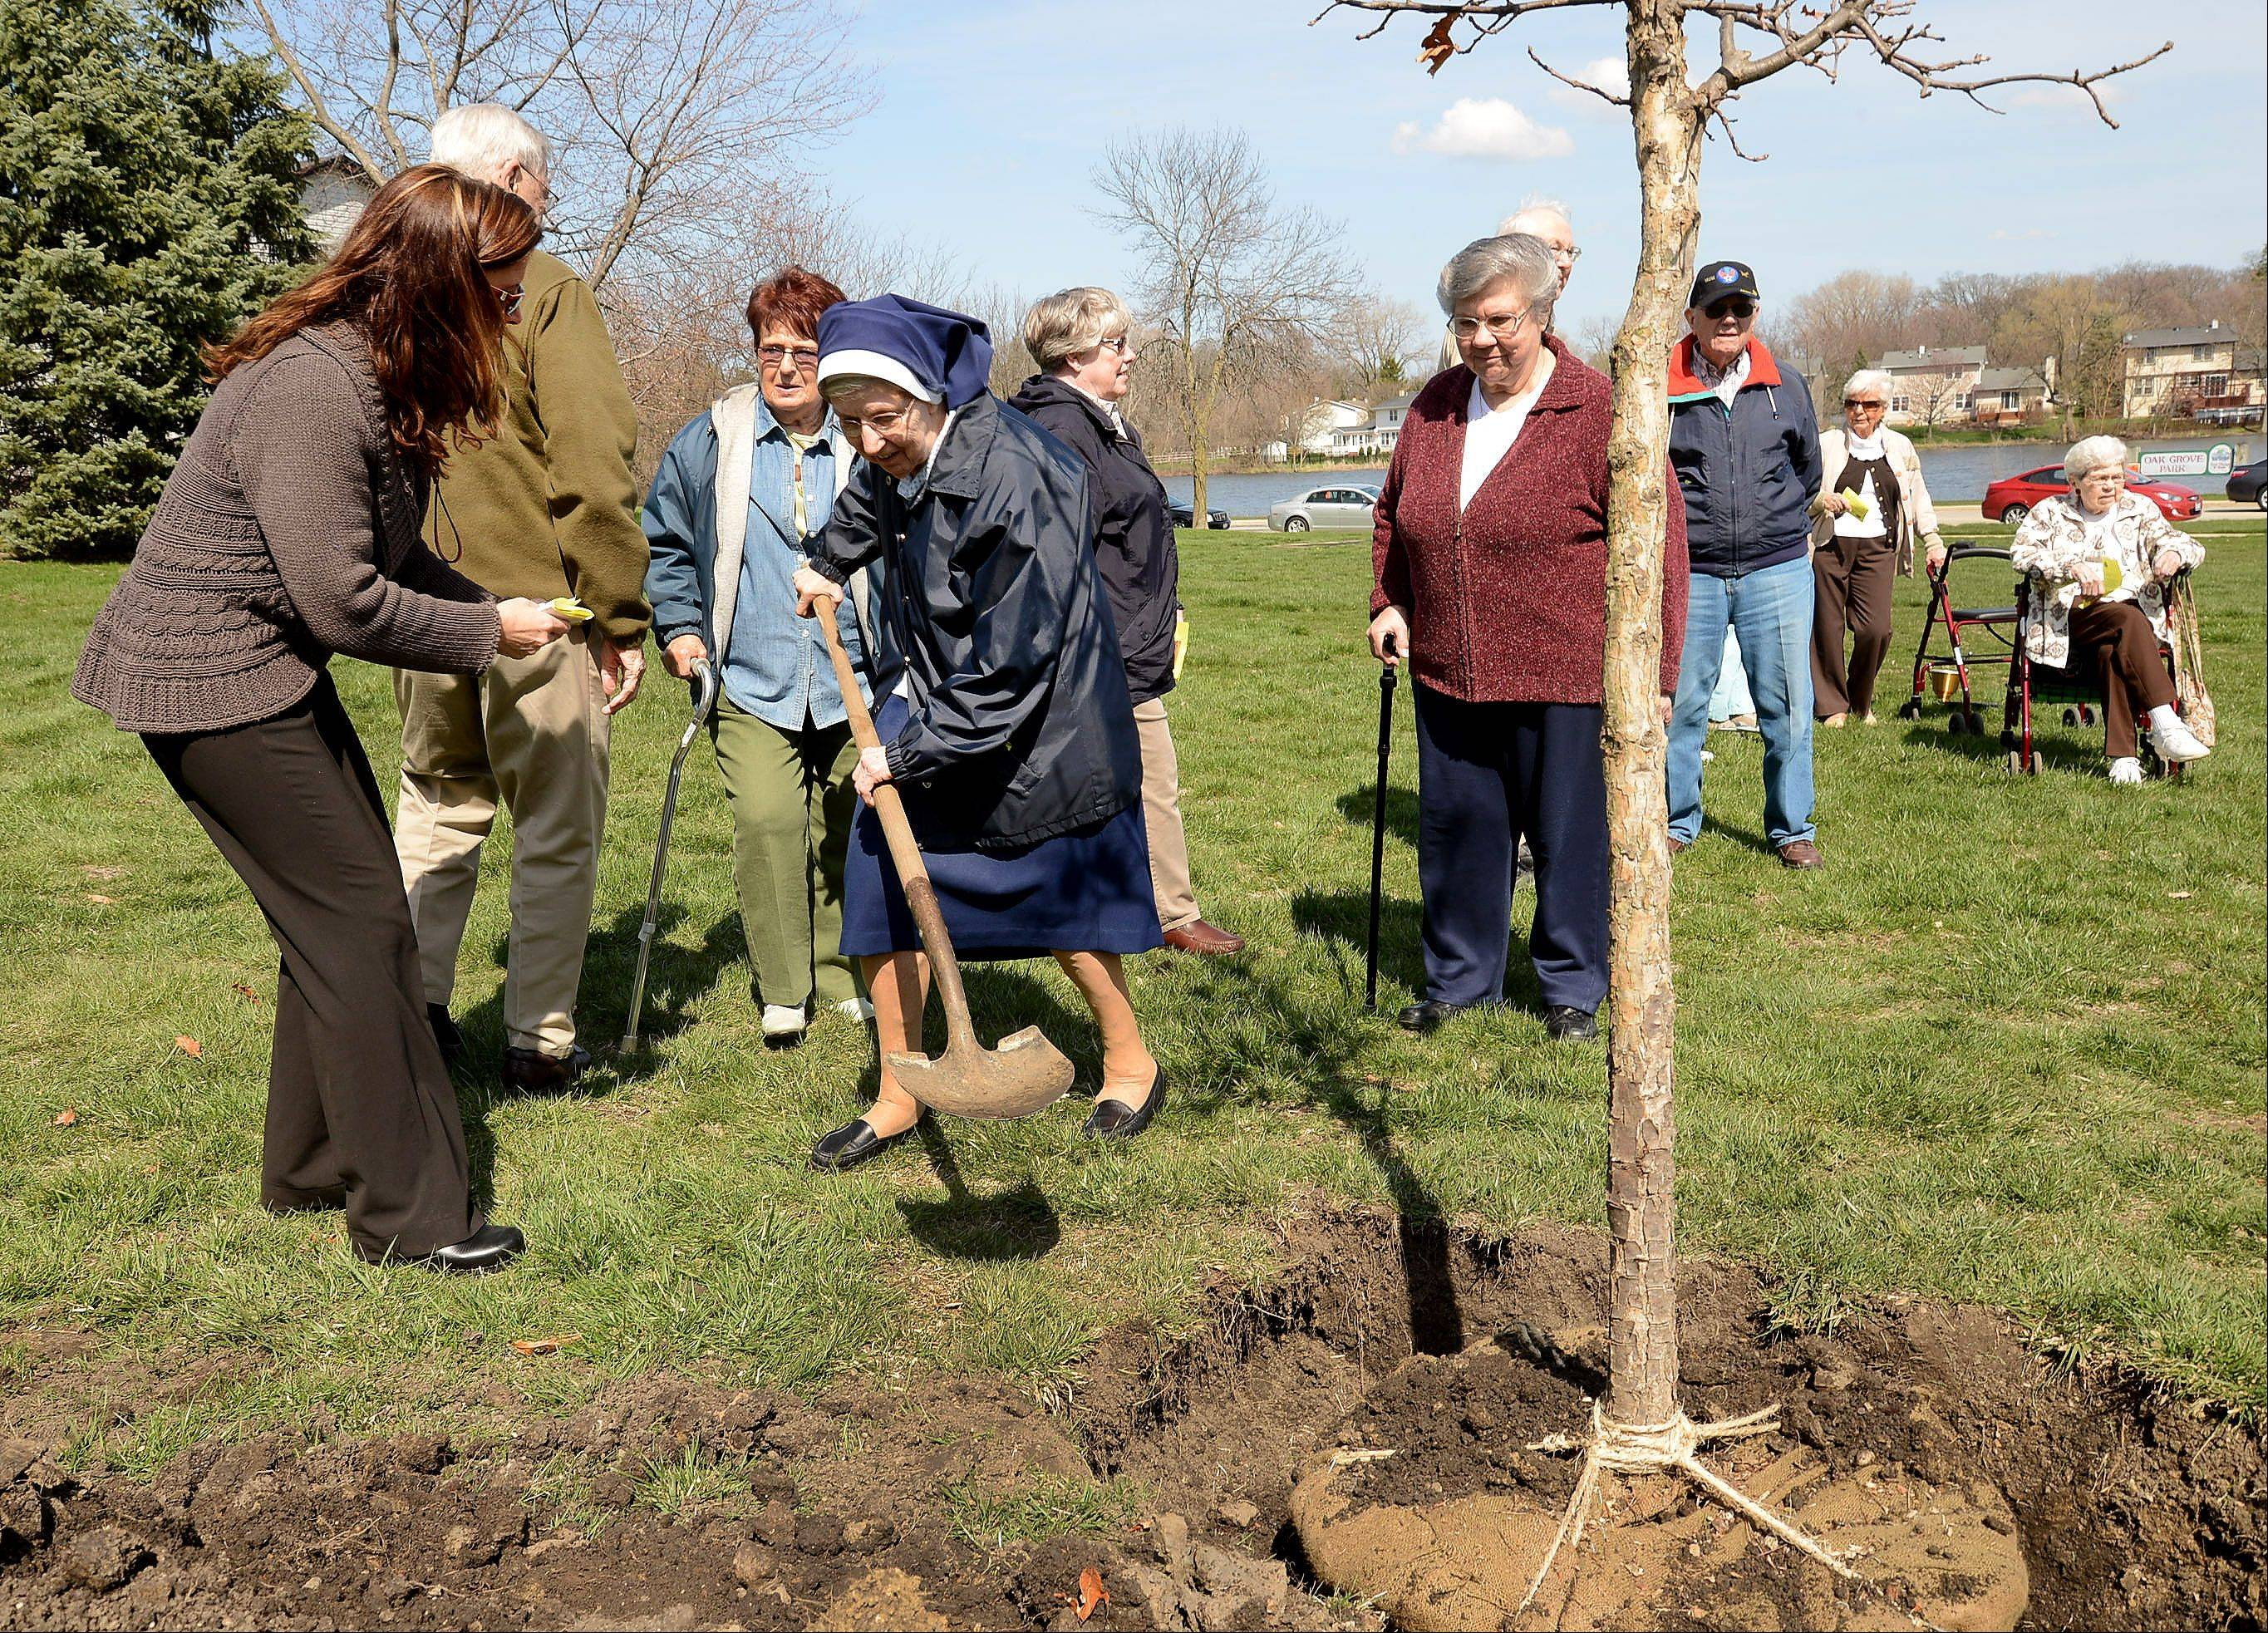 Sr. Augusta, a resident of Clare Oaks, gets help shoveling dirt from Beth Welch, executive director of Clare Oaks, left, as residents of Clare Oaks retirement community in Bartlett plant oak trees.